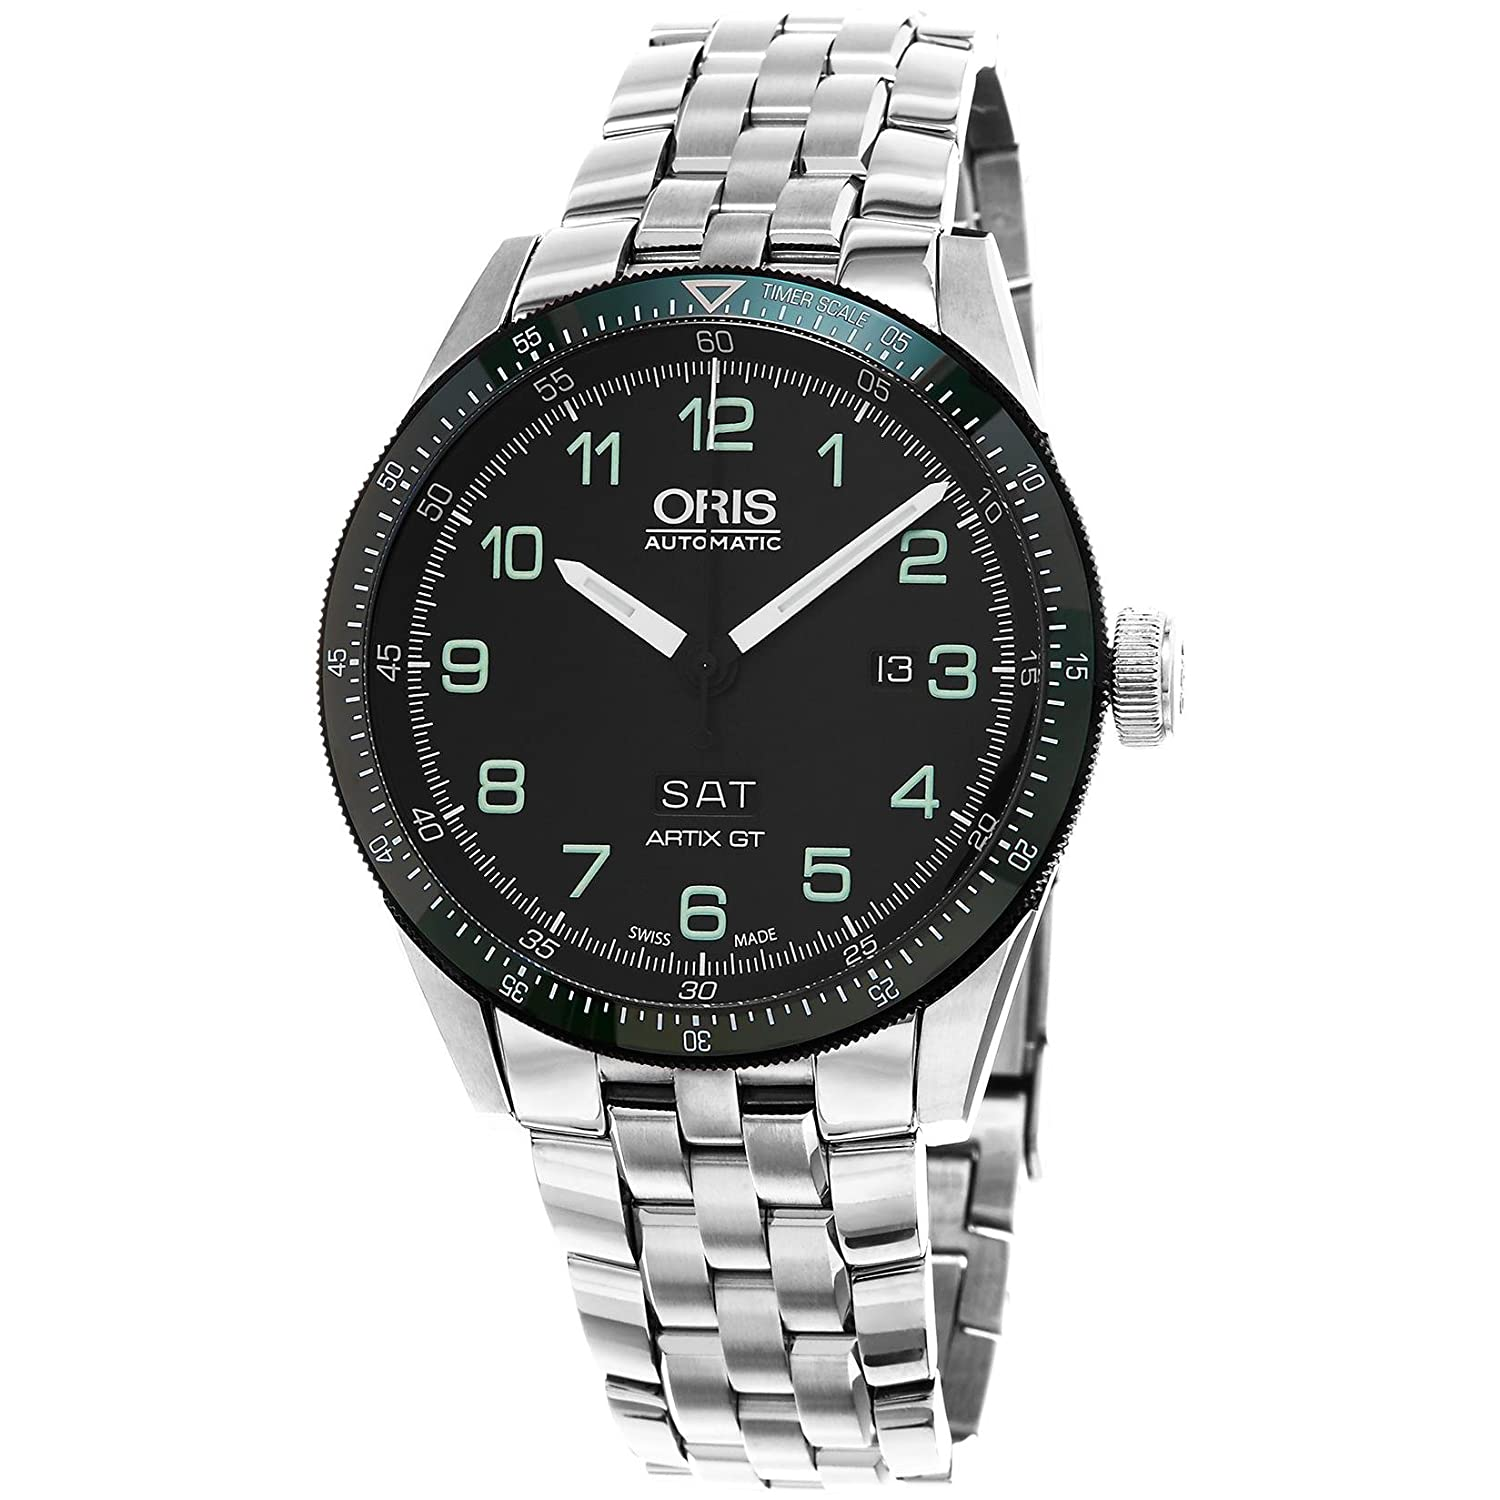 [オリス]Oris 腕時計 Artix Analog Display Swiss Automatic Black Watch 73577064494SET メンズ [並行輸入品] B01AX307QU